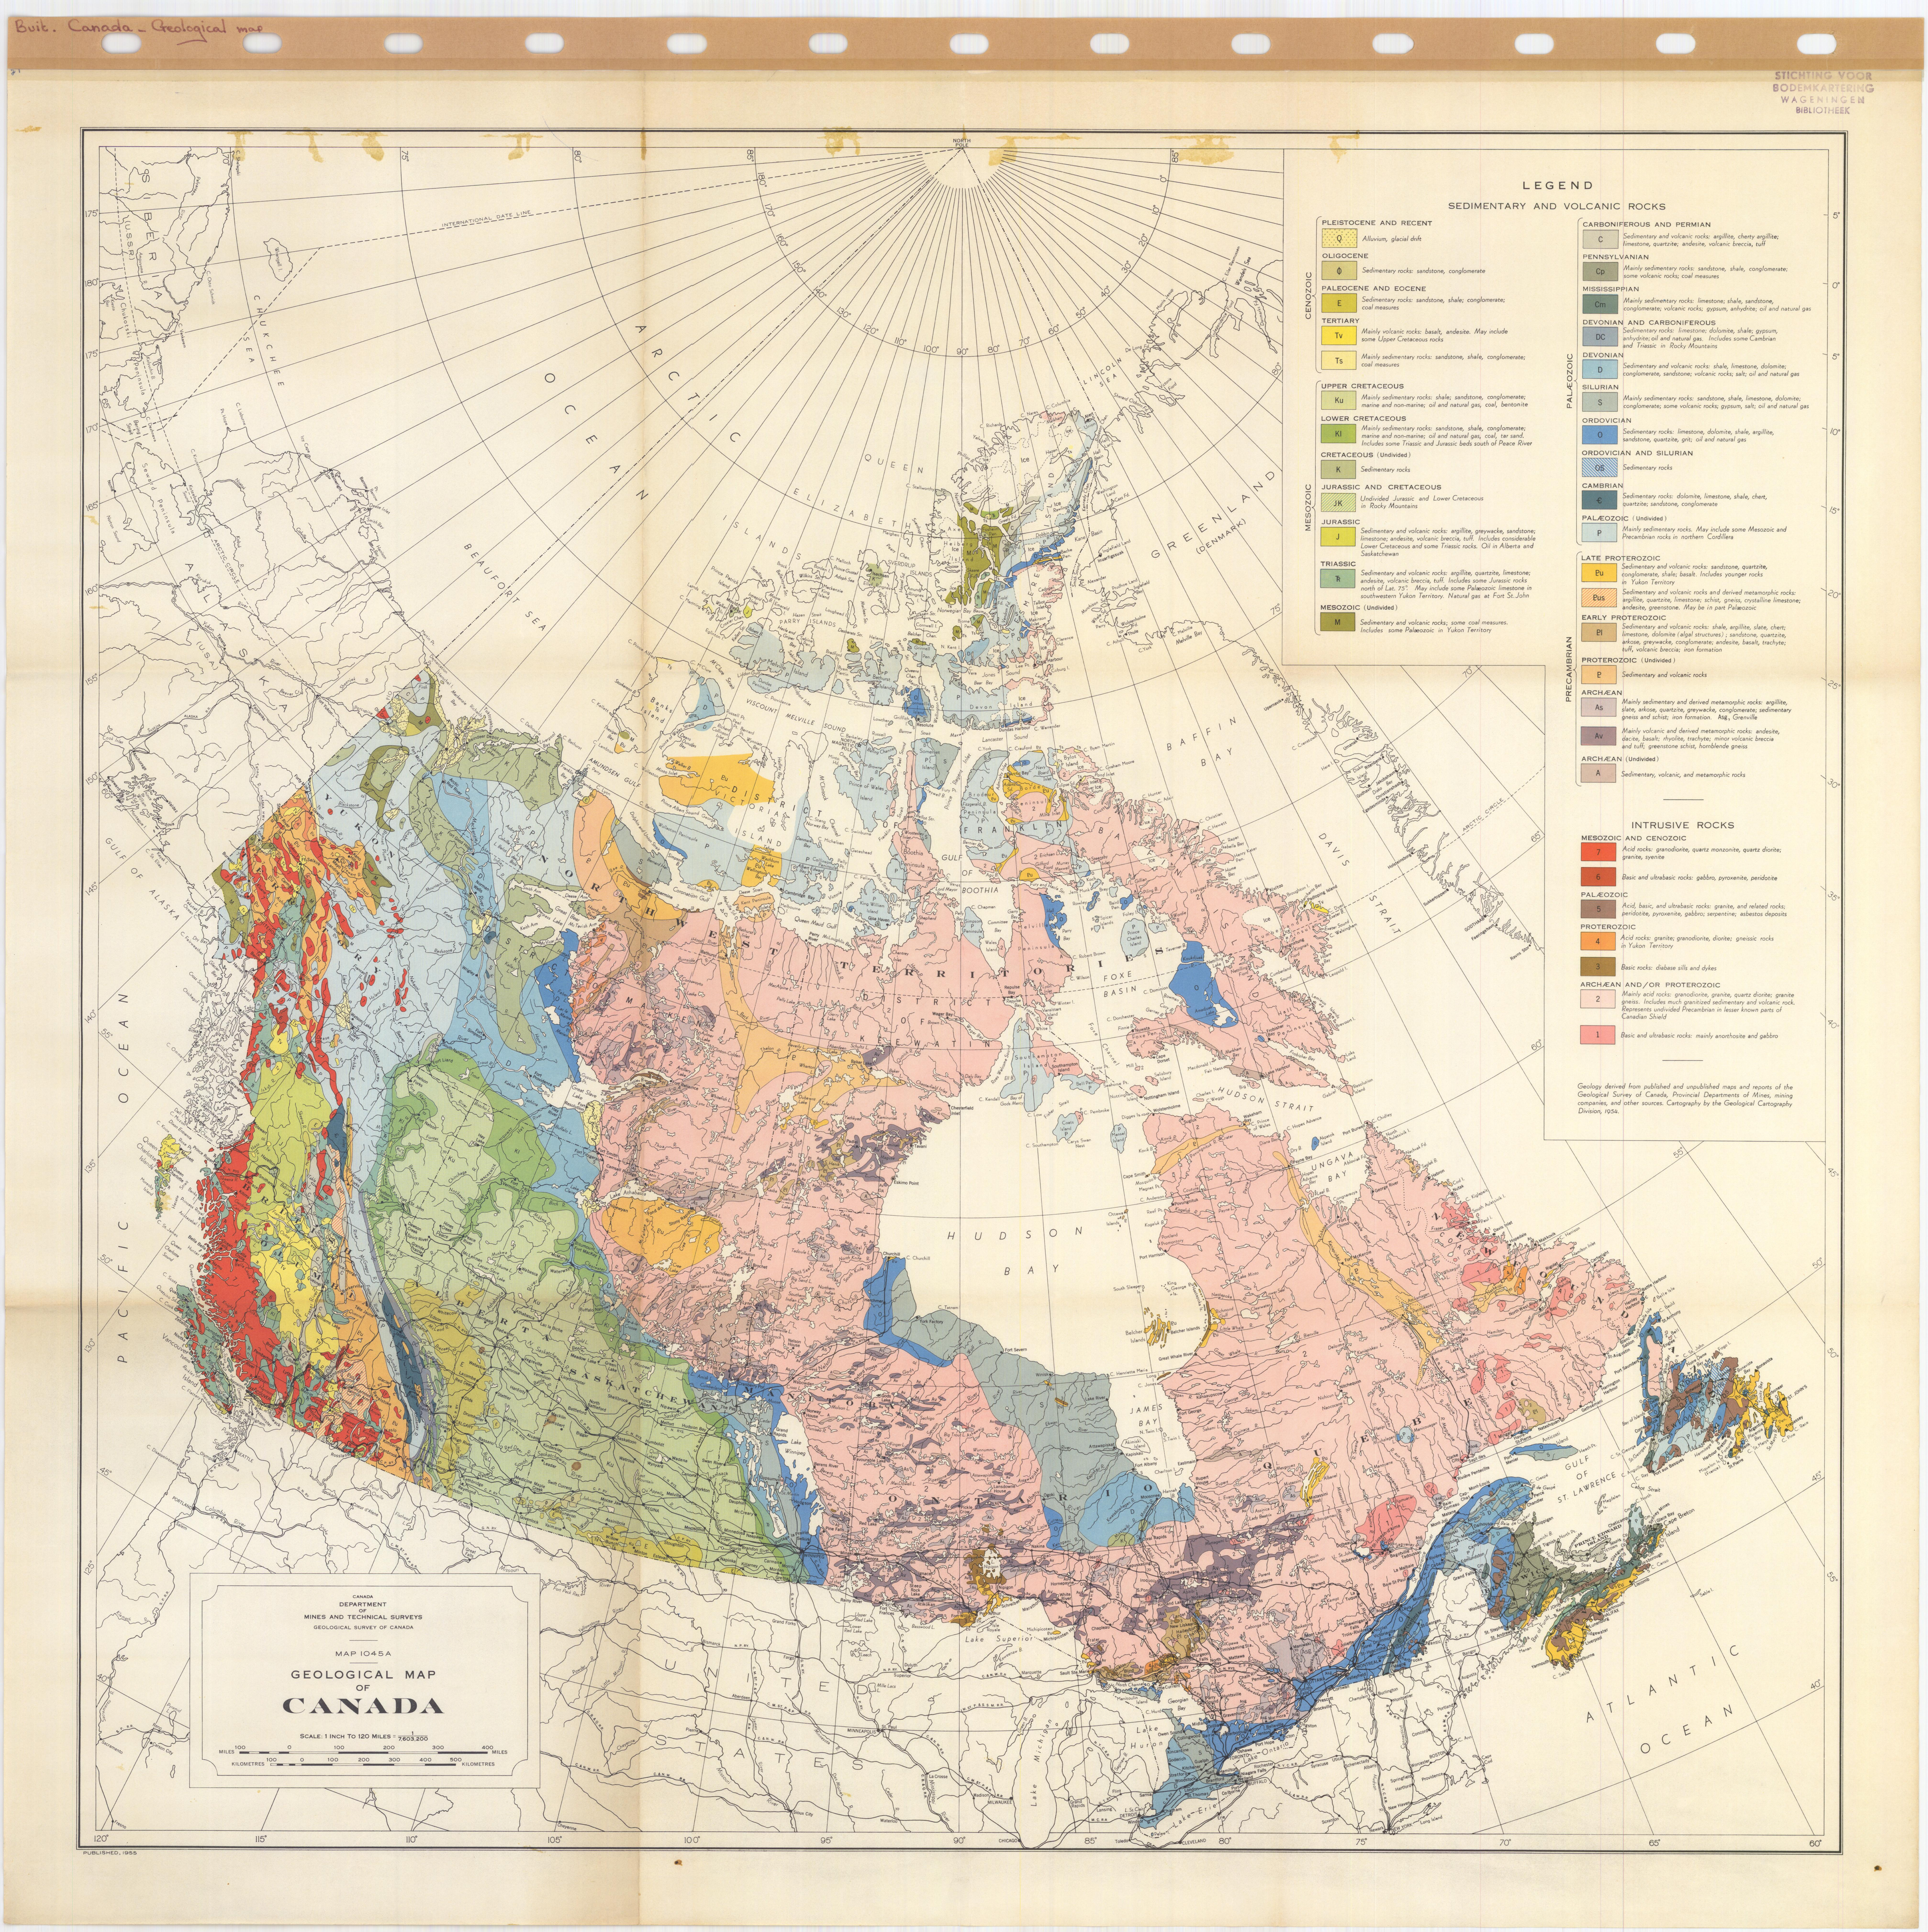 Geological Map Of Canada - ESDAC - European Commission on